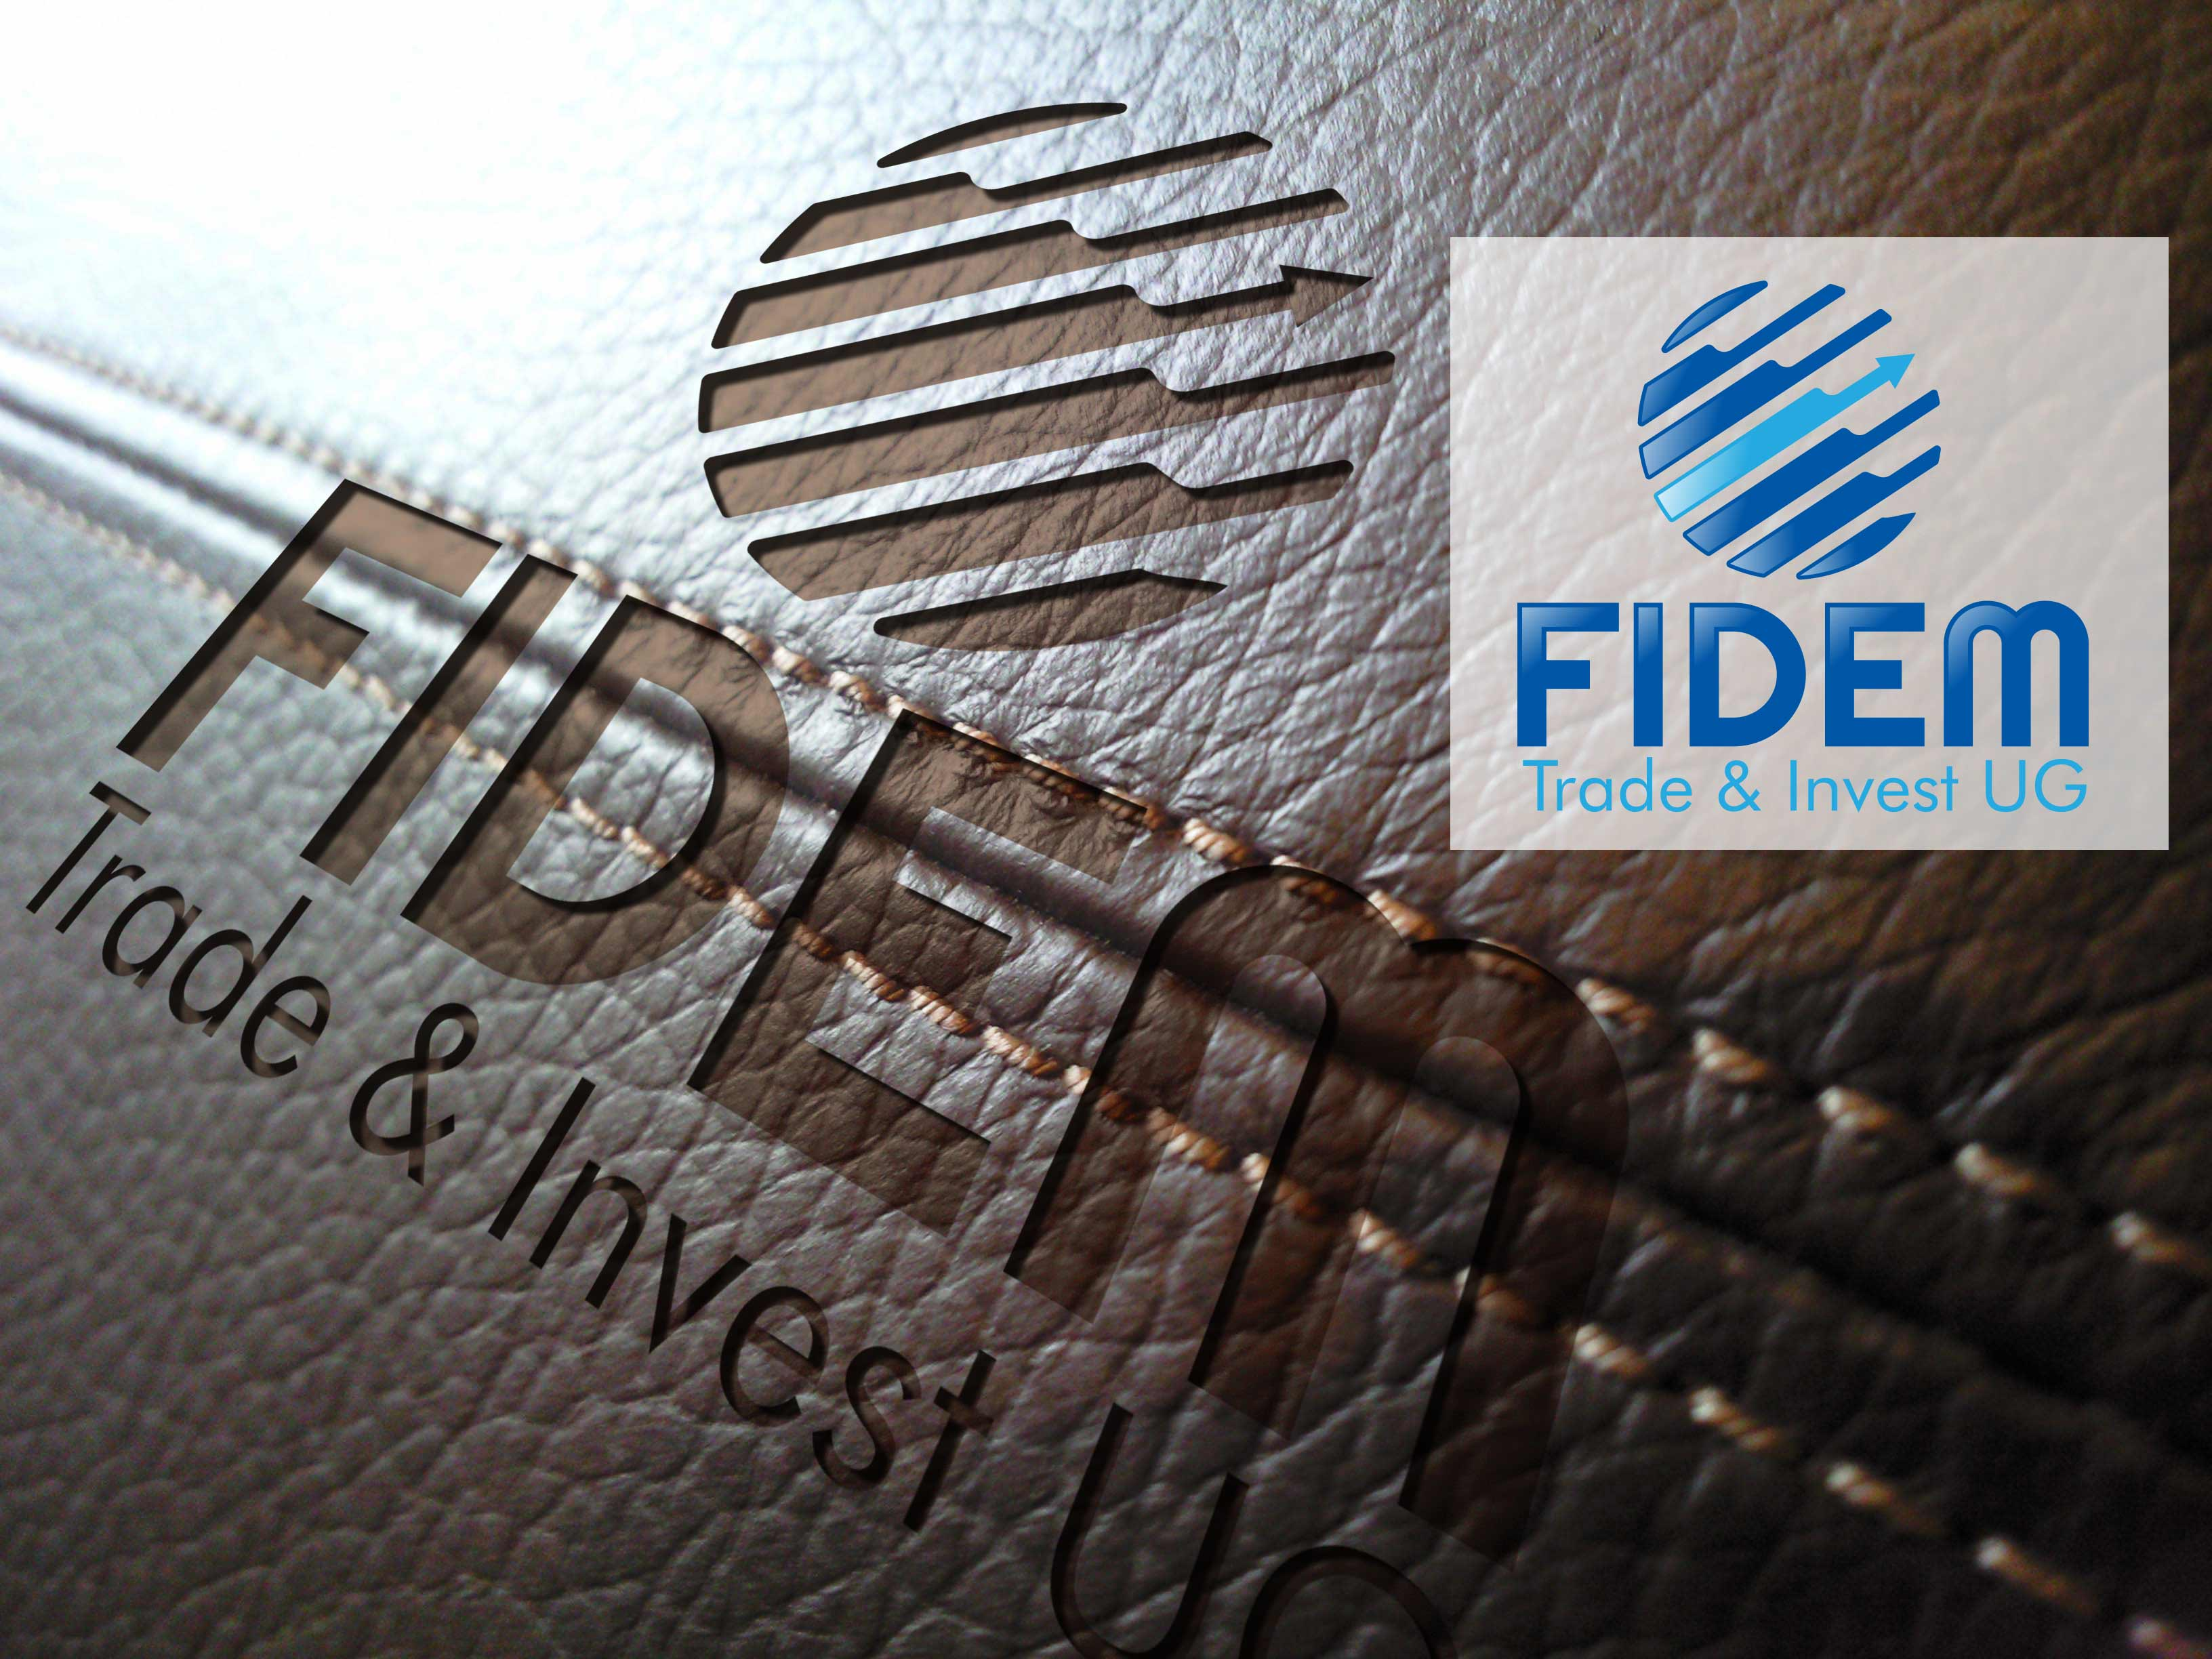 Logo Design by lagalag - Entry No. 149 in the Logo Design Contest Professional Logo Design for FIDEM Trade & Invest UG.